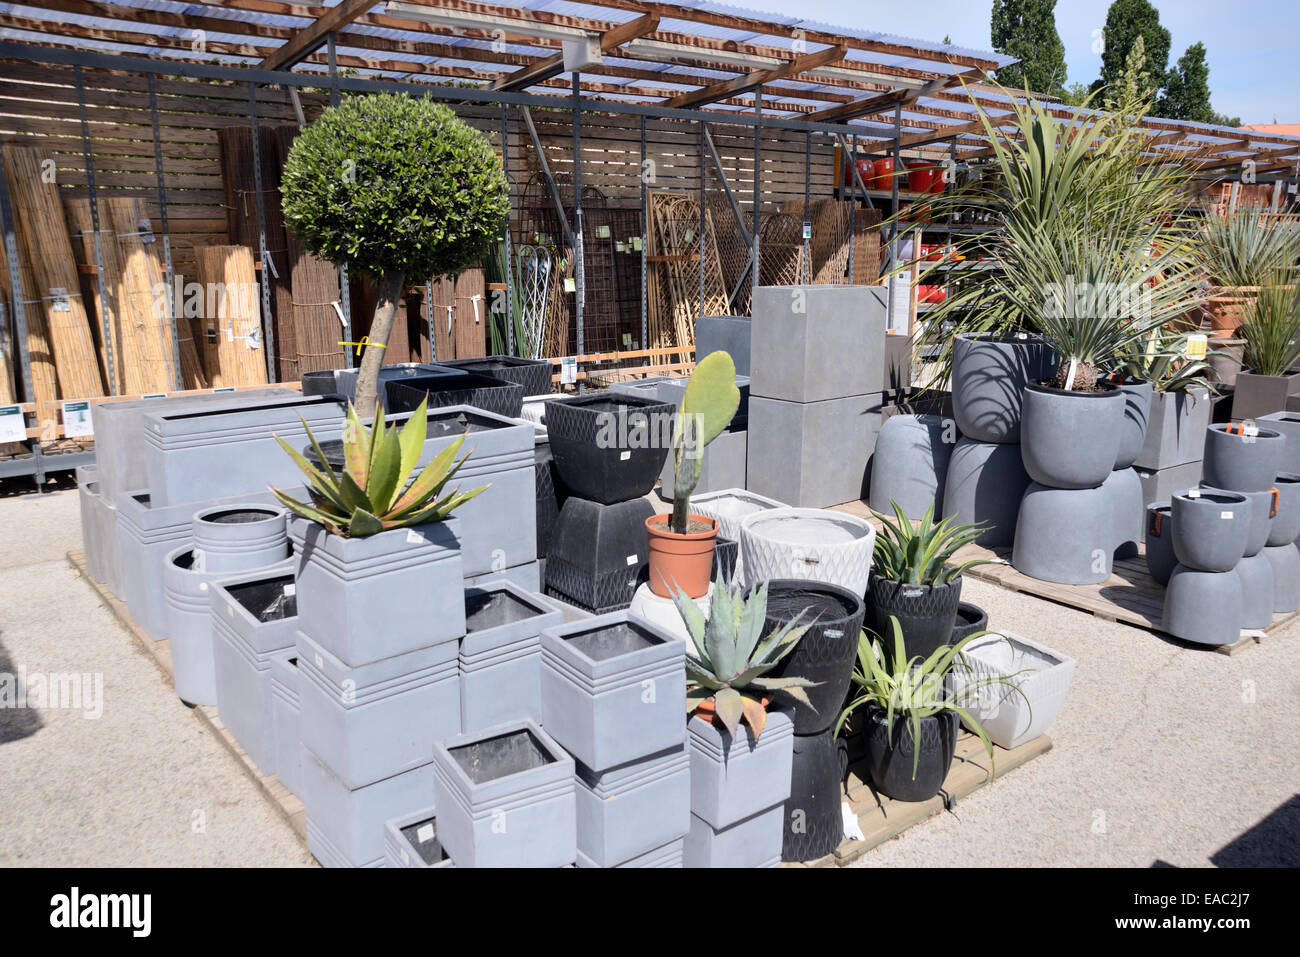 garden plant pots for sale. display of gray or grey planters plant pots for sale in garden center centre